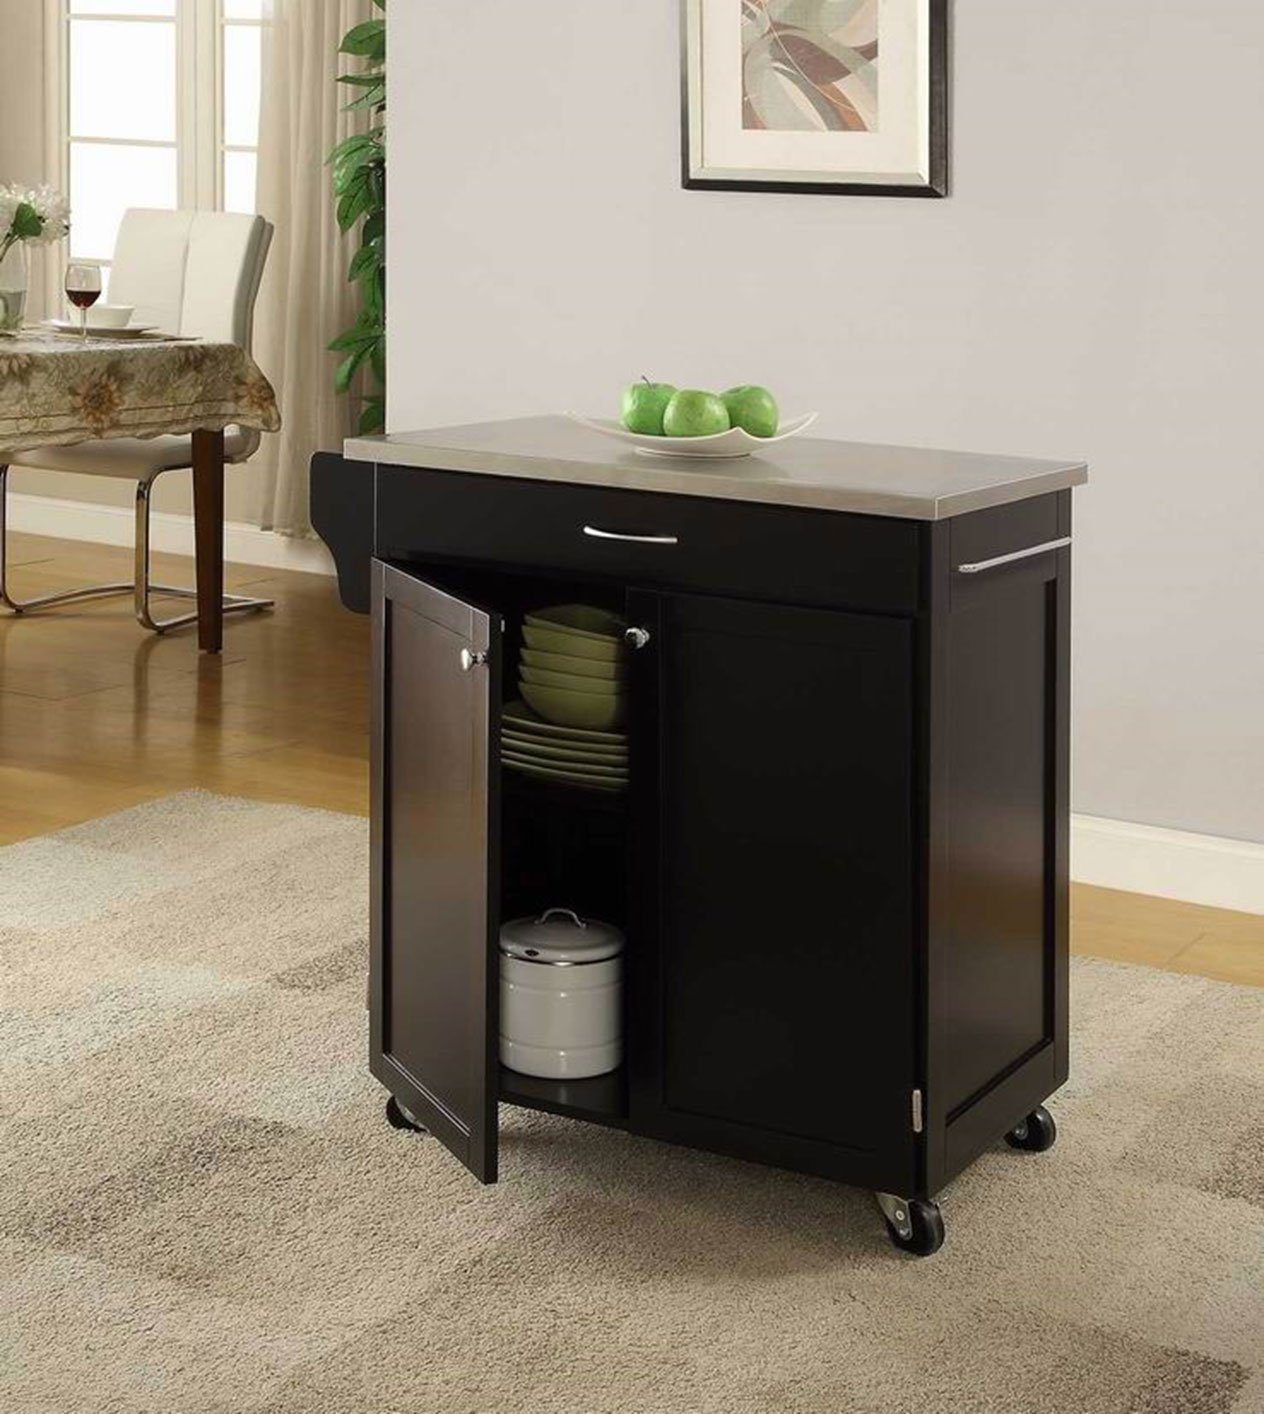 Oliver and Smith - Nashville Collection - Mobile Kitchen Island Cart on Wheels - Black - Stainless Steel Top - 32'' W x 19'' L x 36'' H 102066-01blk